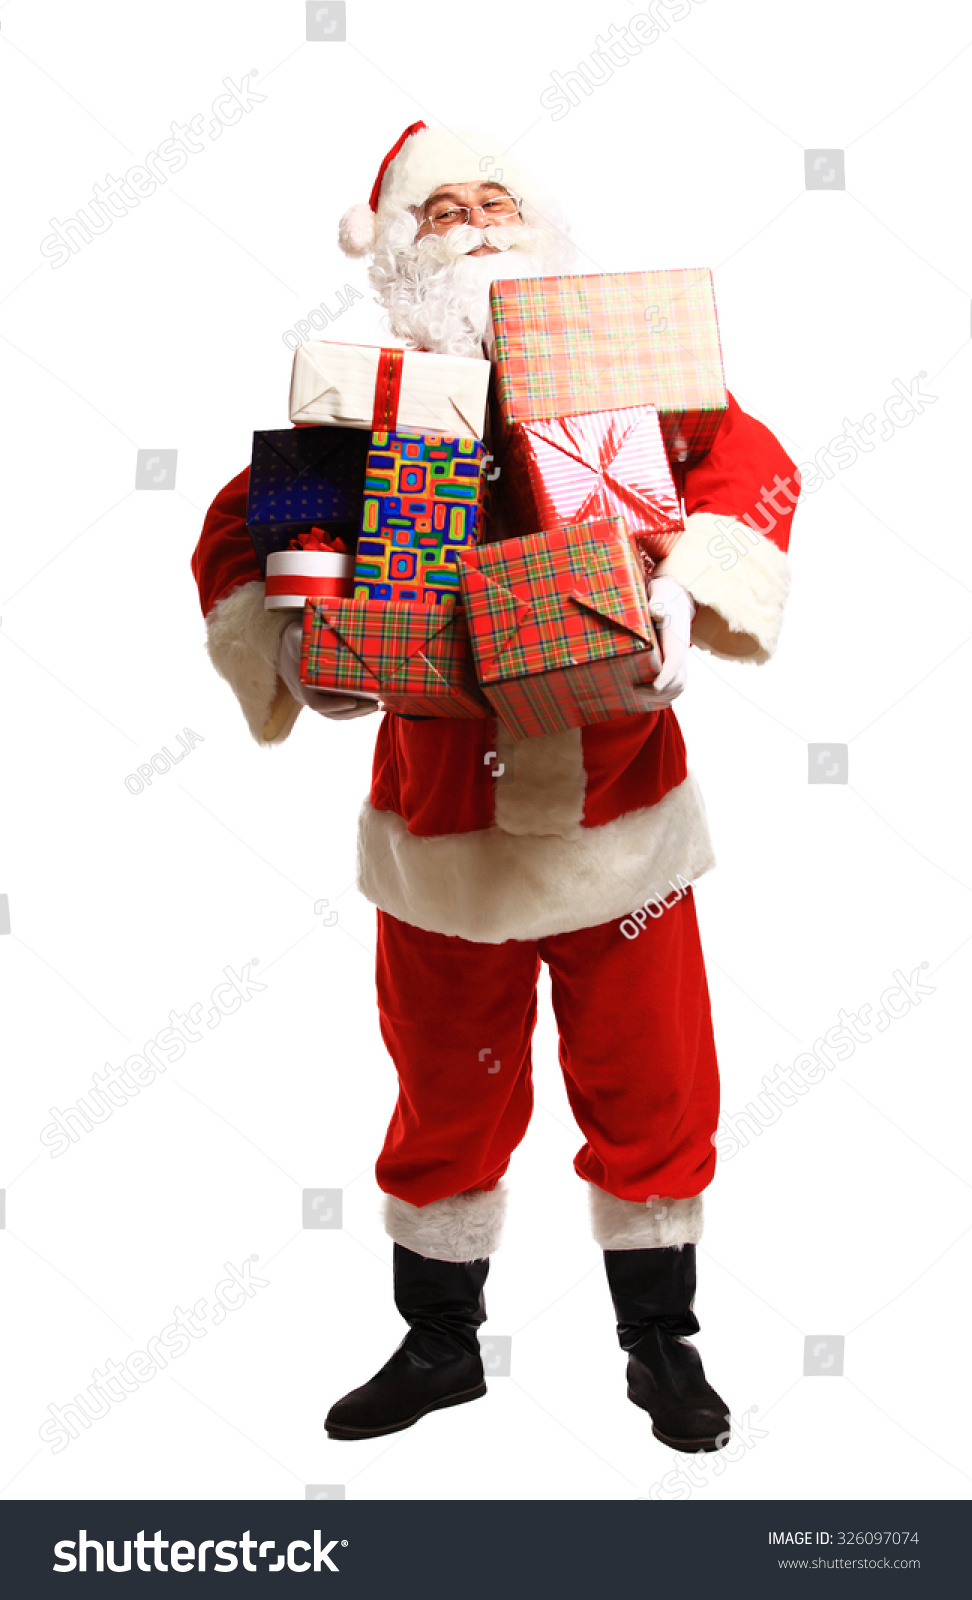 Happy Santa Claus with xmas presents looking at camera